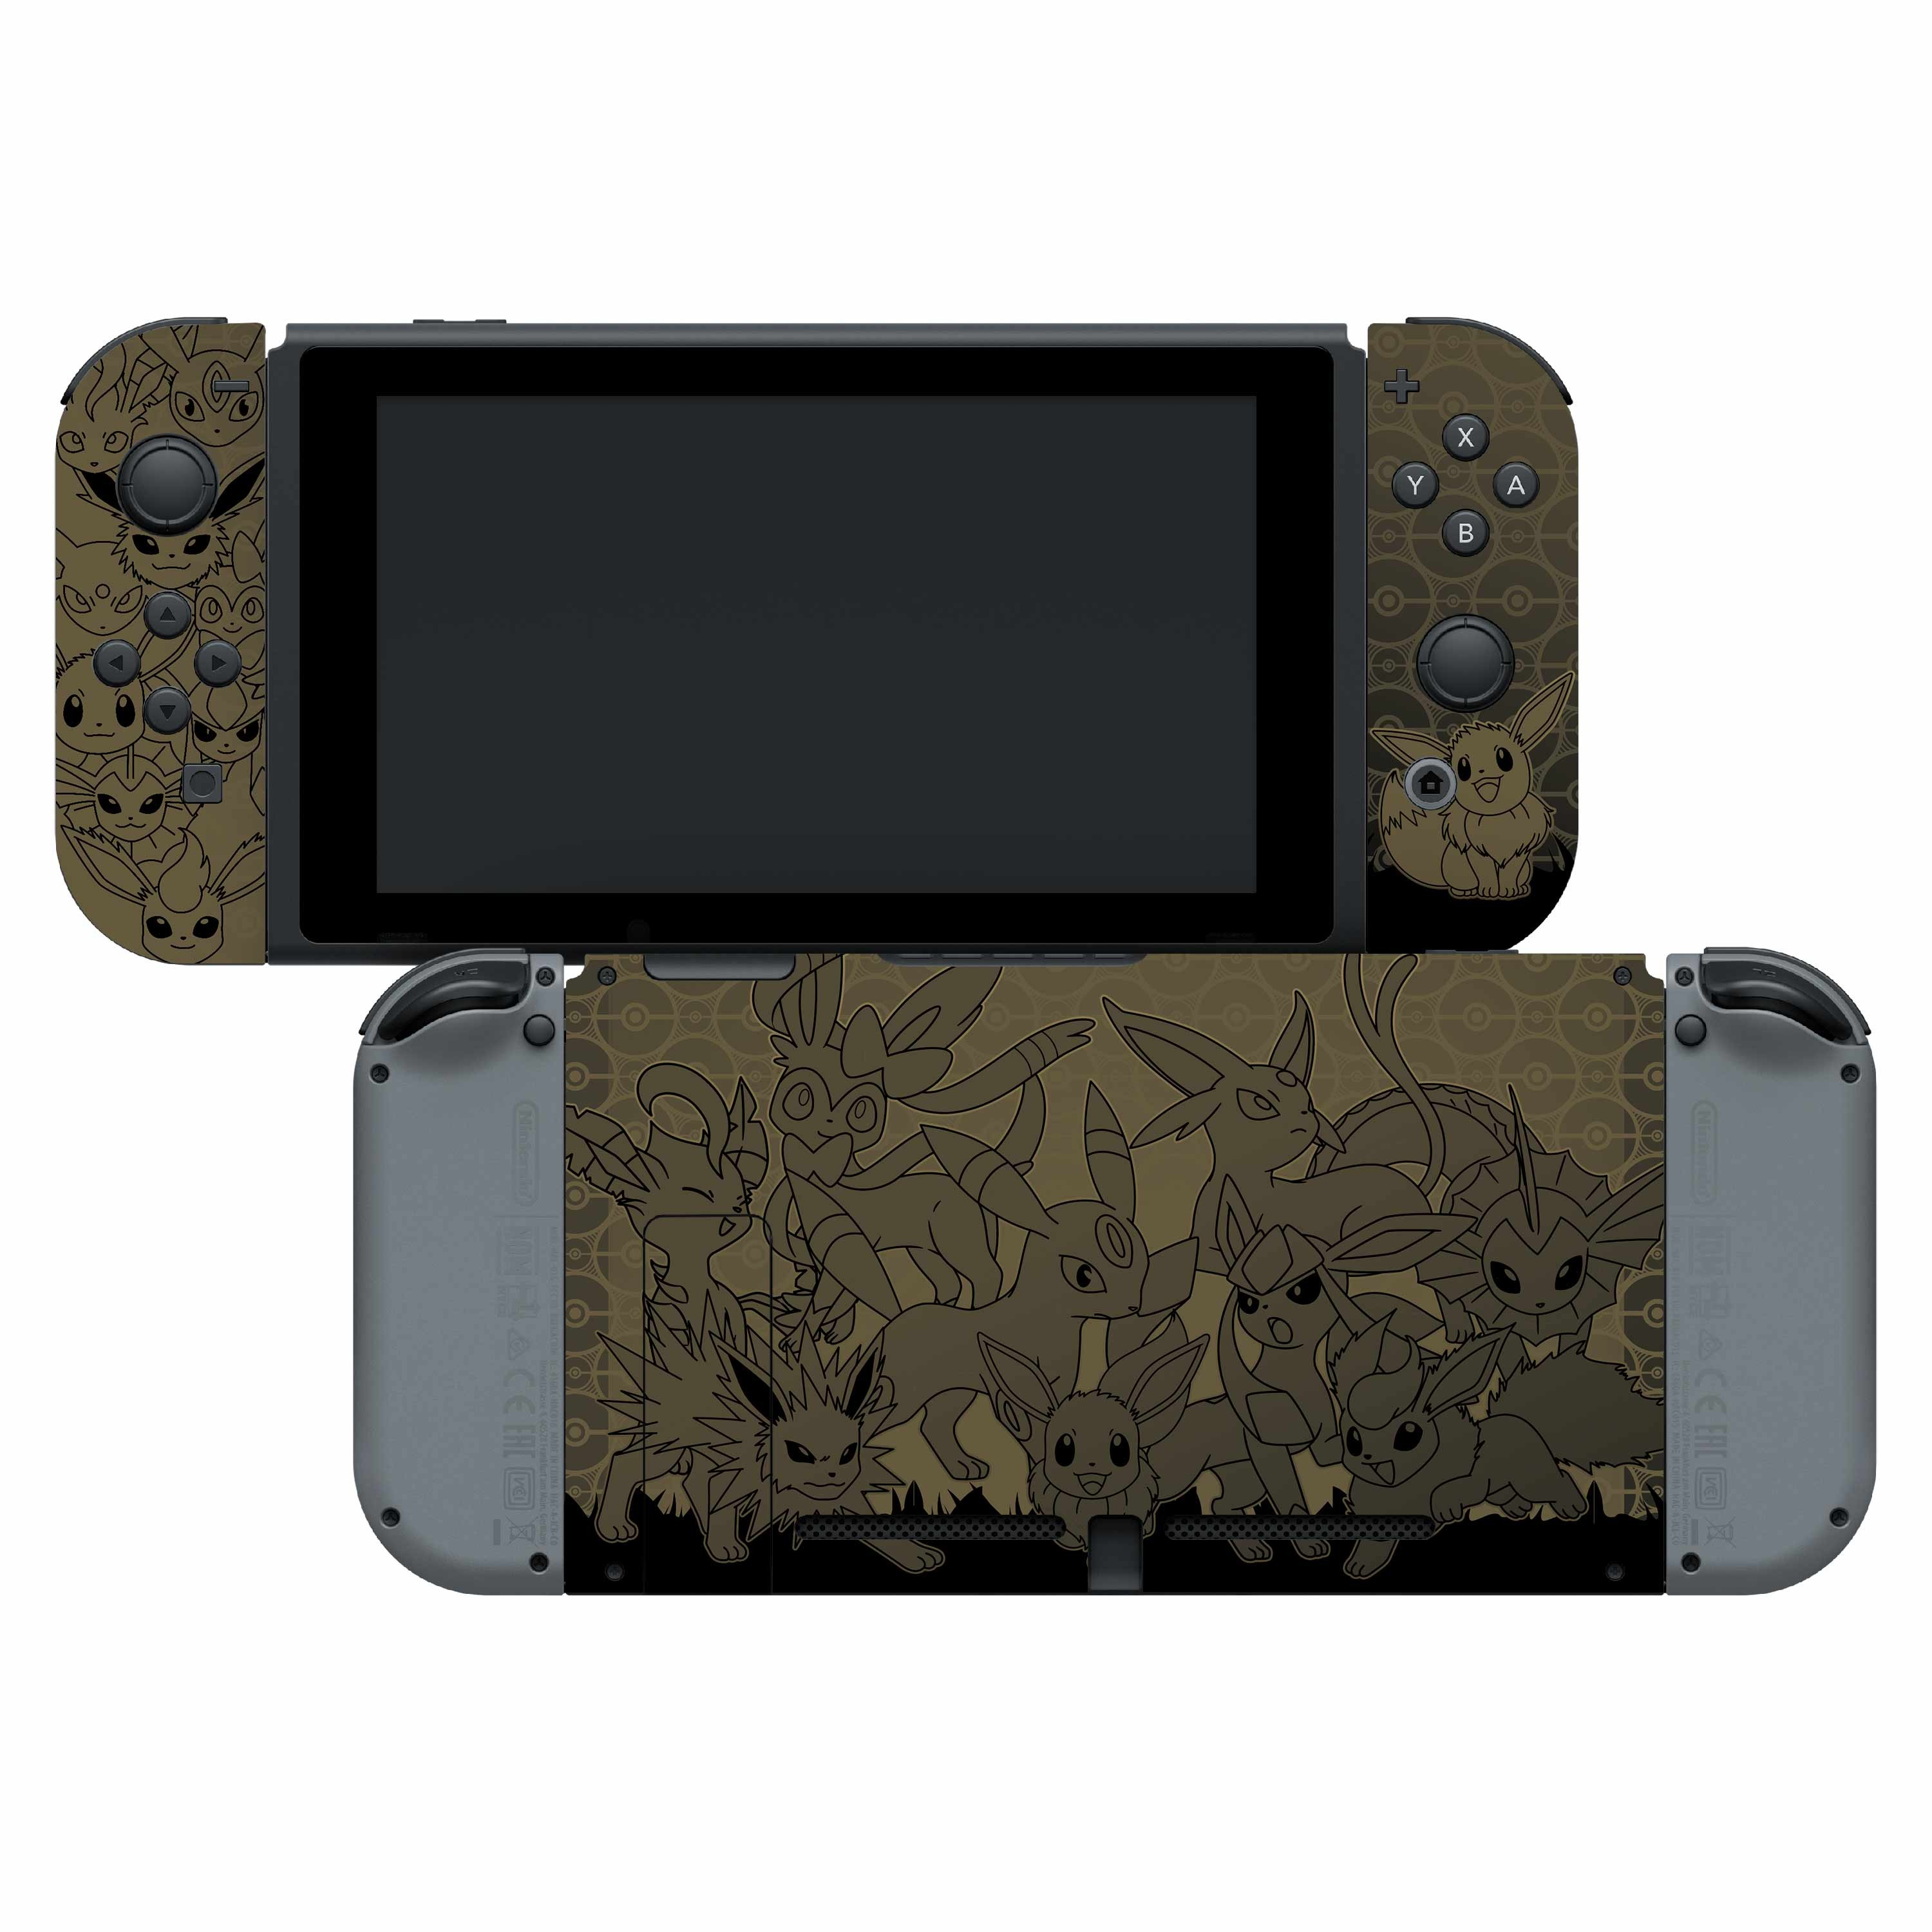 Nintendo Switch Skin & Screen Protector Set with a Pokemon Eevee Evolutions Design, Image 1